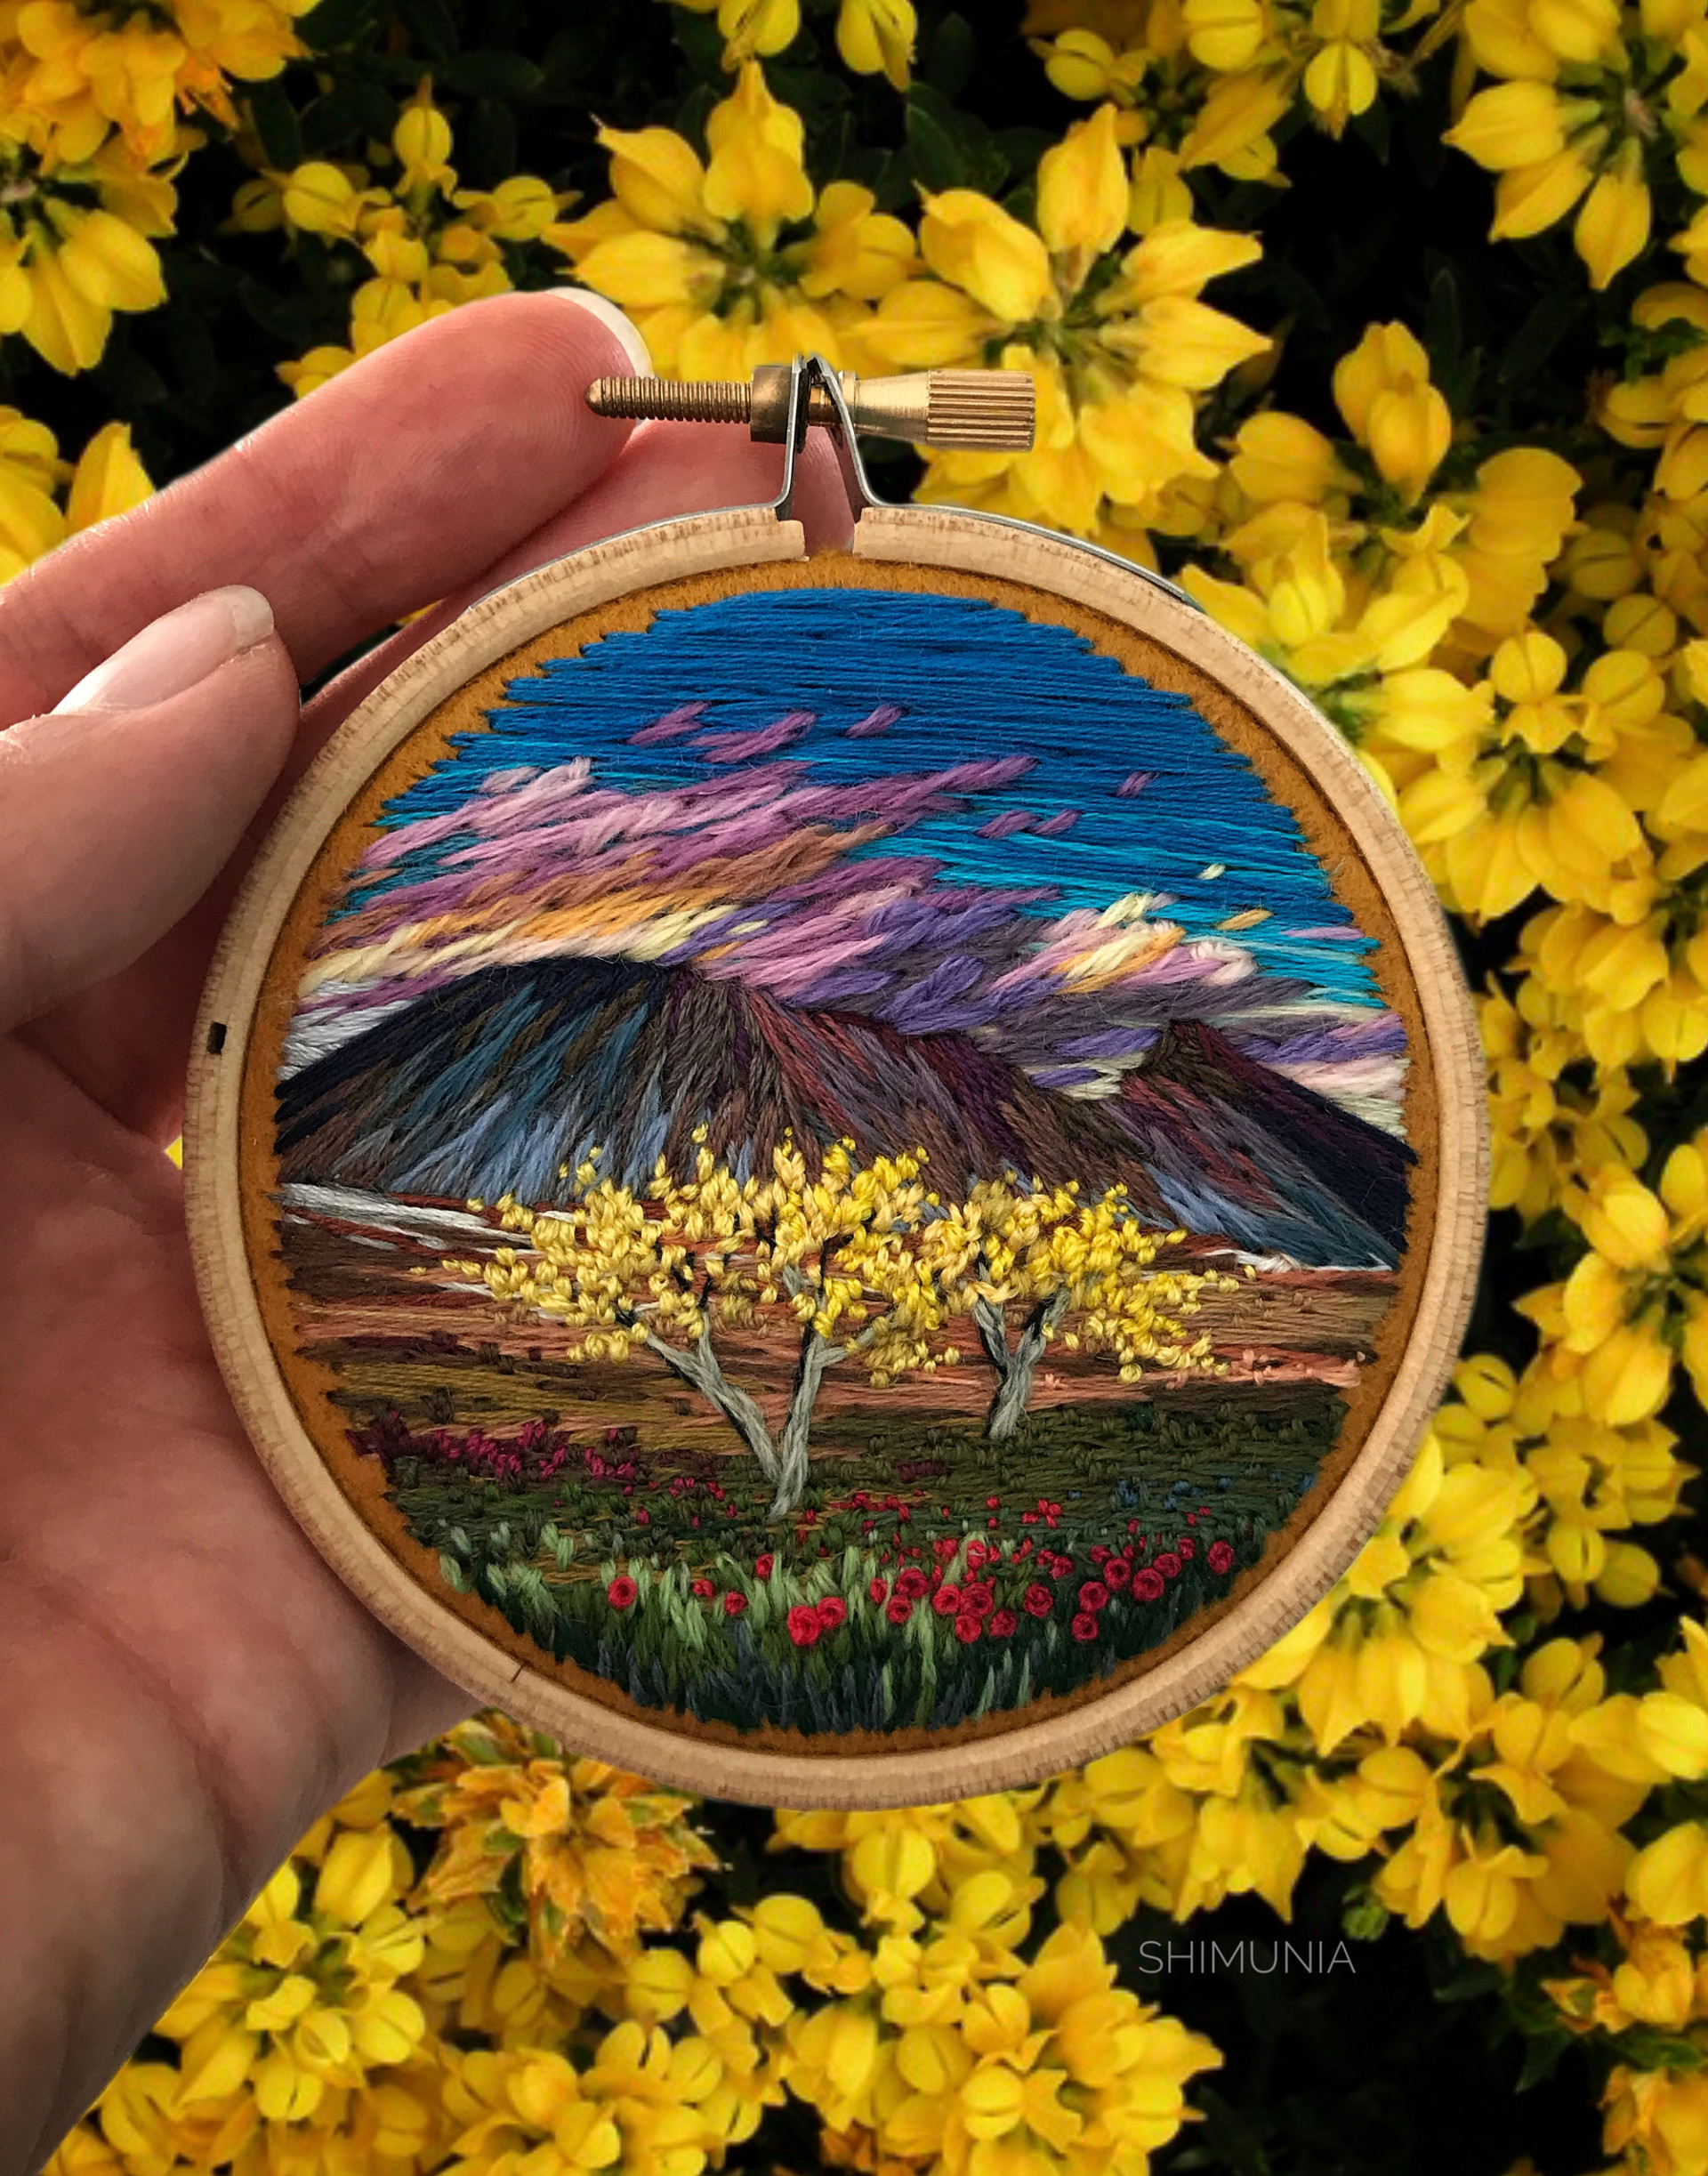 embroidery-3-960x1223@2x.jpg